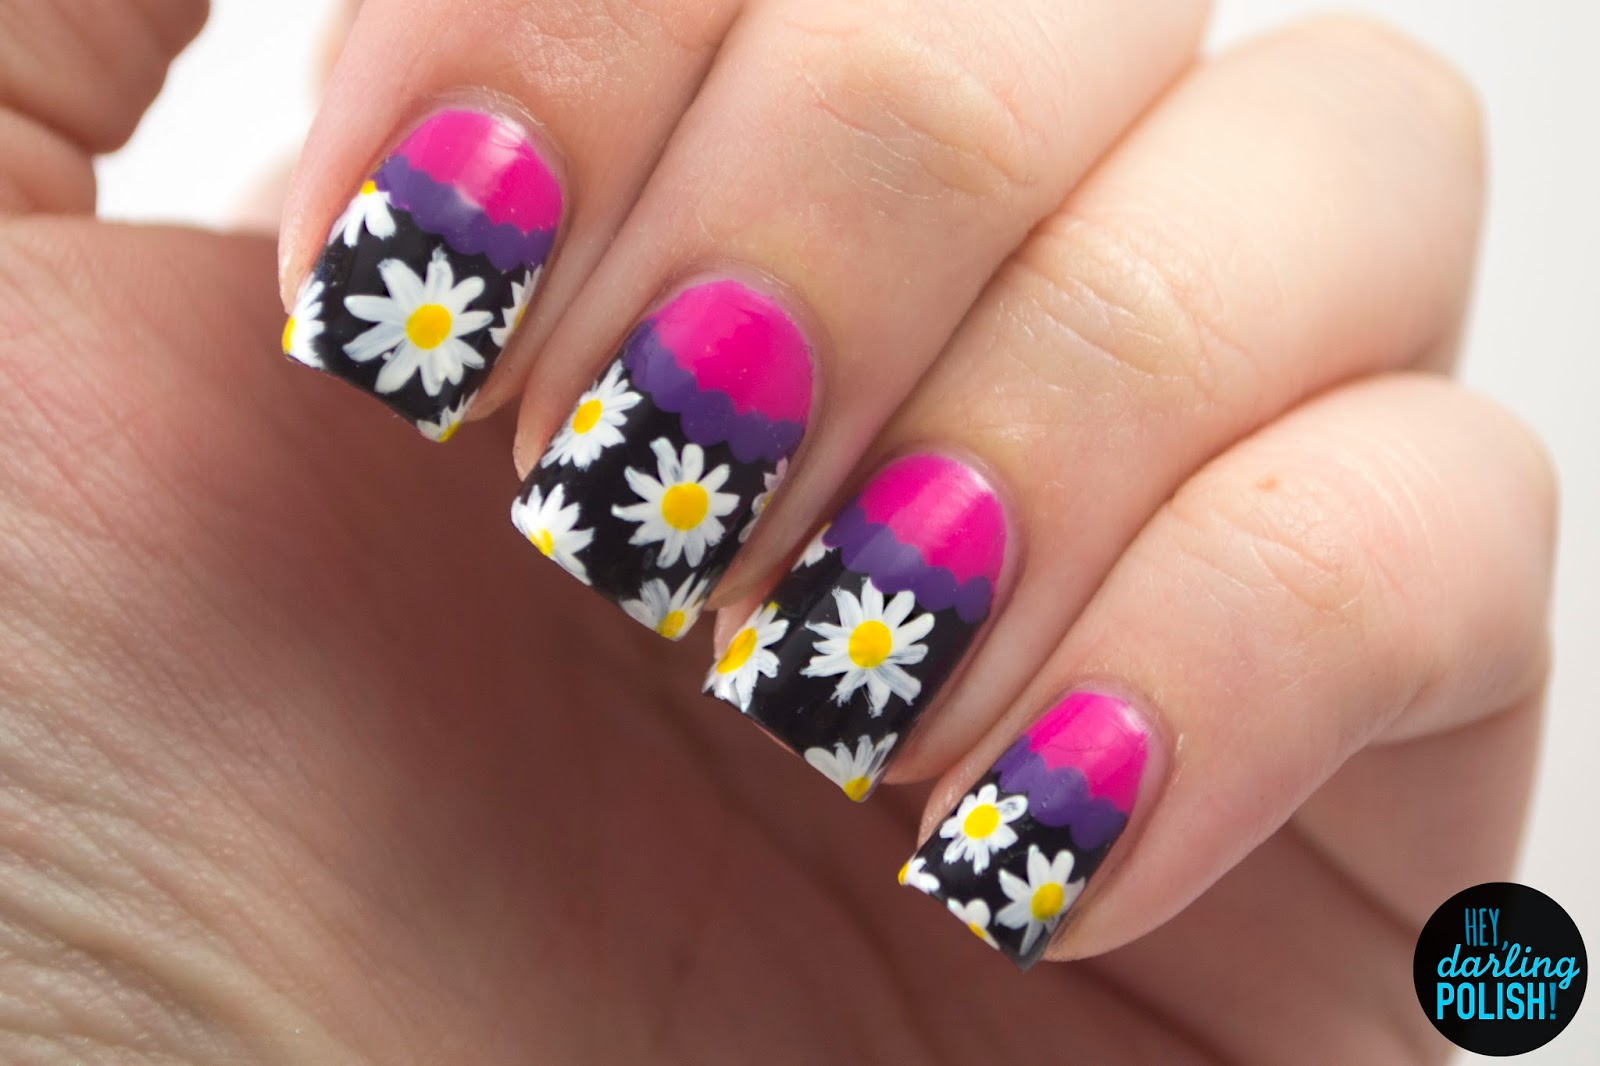 nails, nail art, nail polish, polish, theme buffet, daisies, flowers, floral, pink, purple, black, white, yellow, hey darling polish